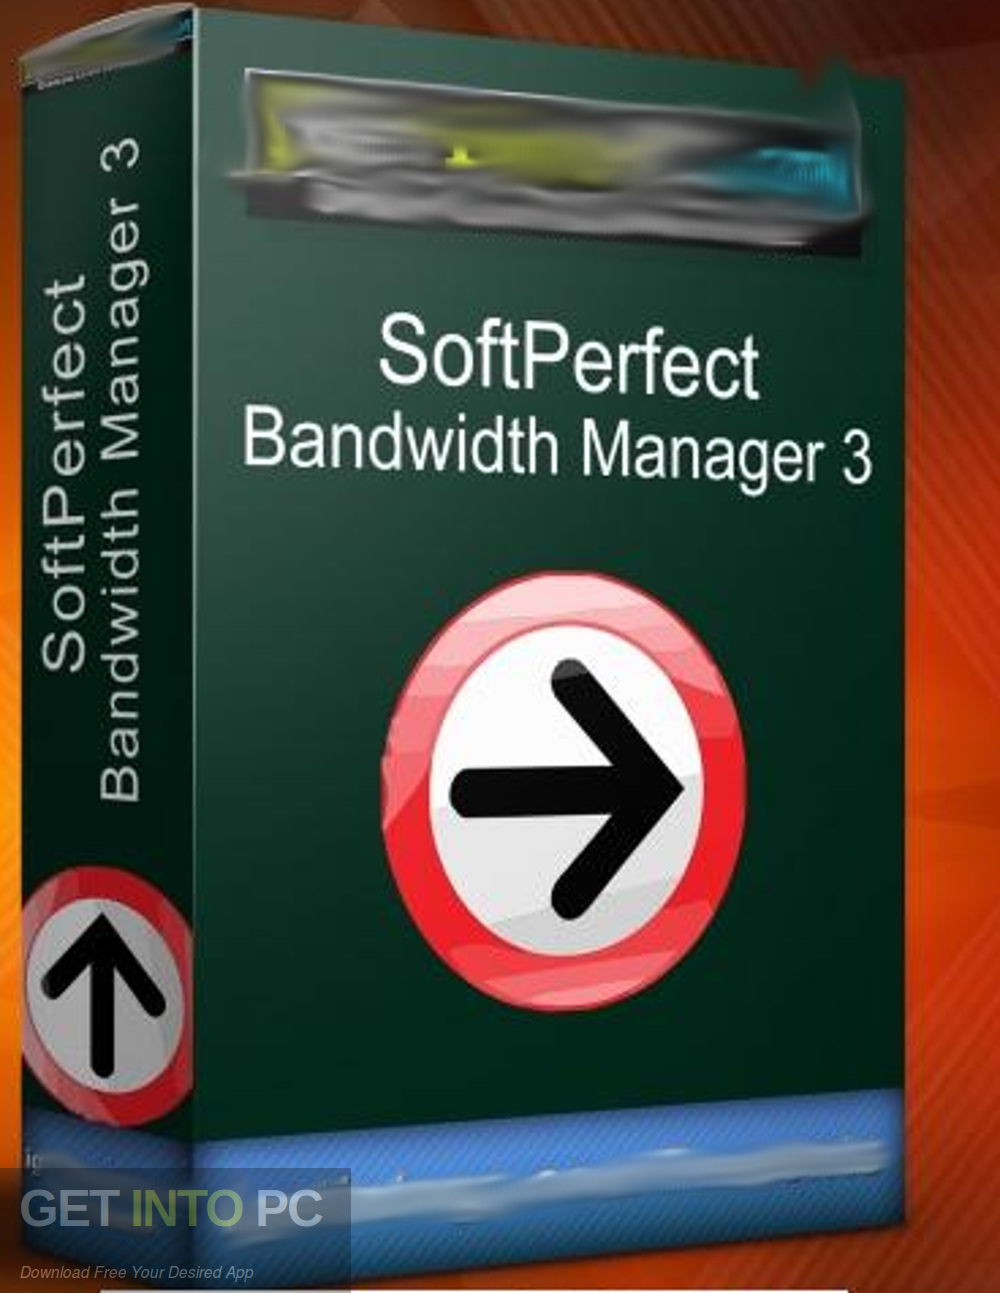 SoftPerfect Bandwidth Manager 2019 Free Download-GetintoPC.com